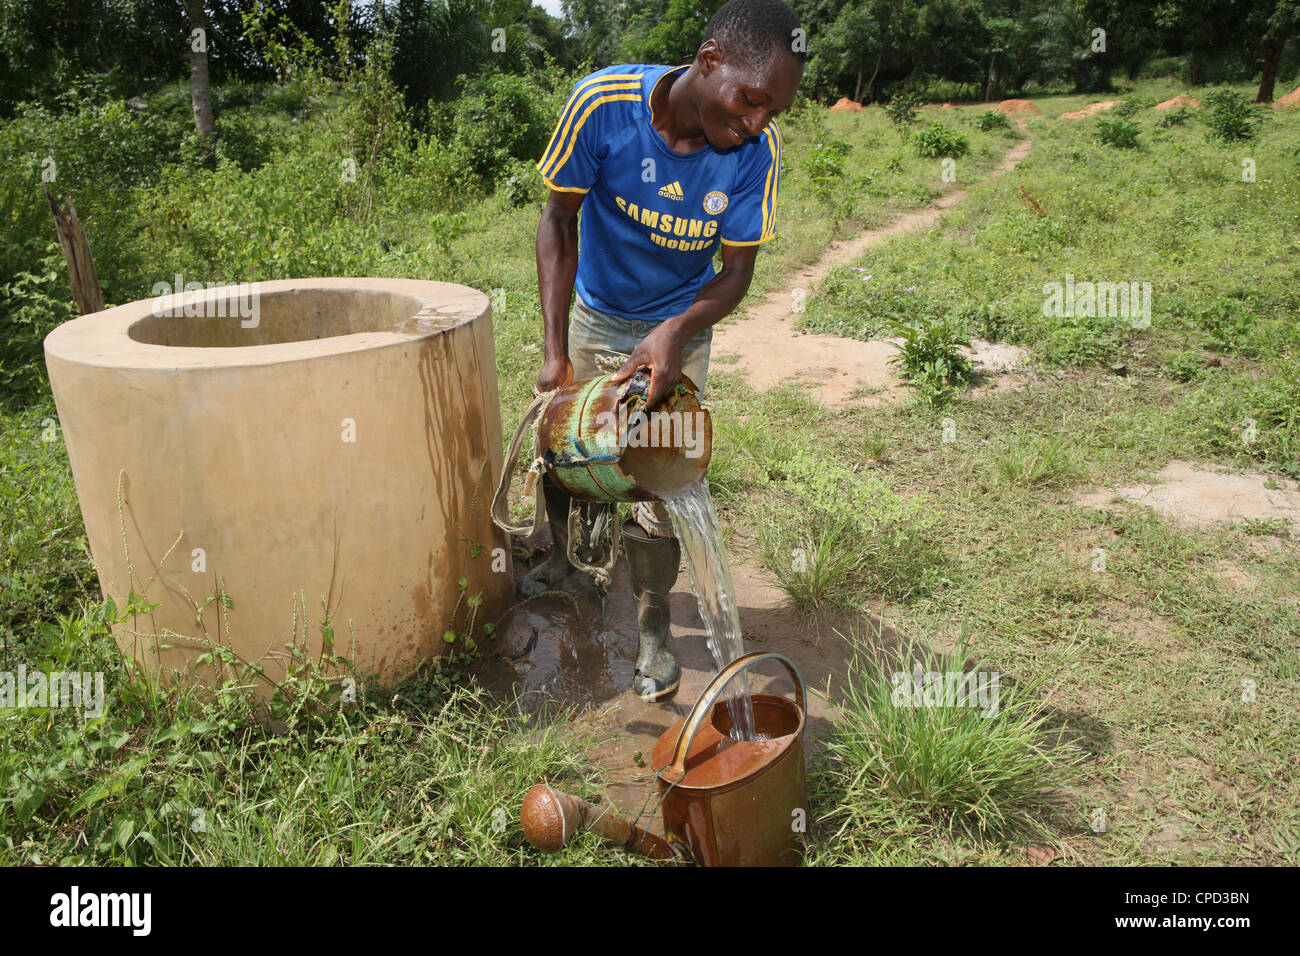 Man fetching water from well, Tori, Benin, West Africa, Africa - Stock Image